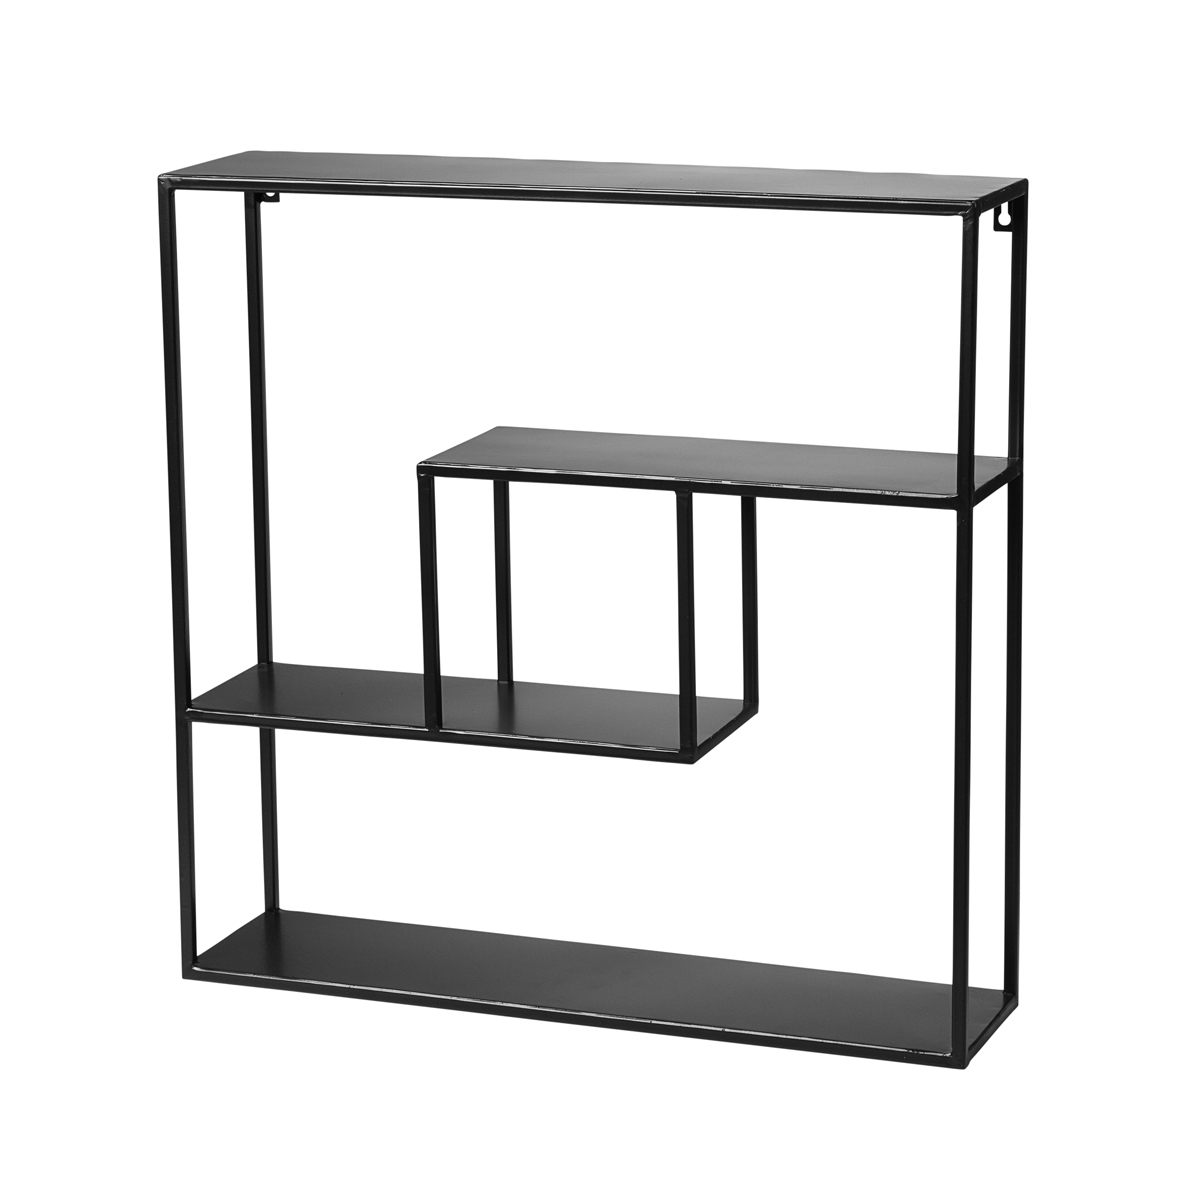 metal-shelf-broste-copenhagen-furniture